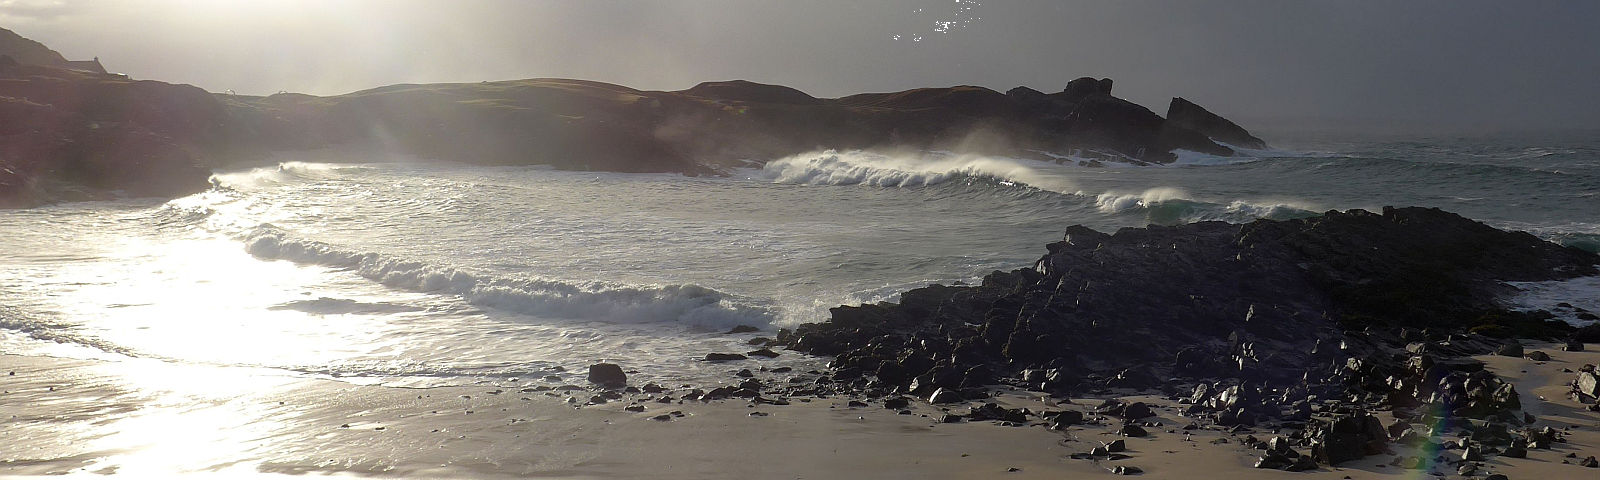 Split Rock and Clachtoll Beach